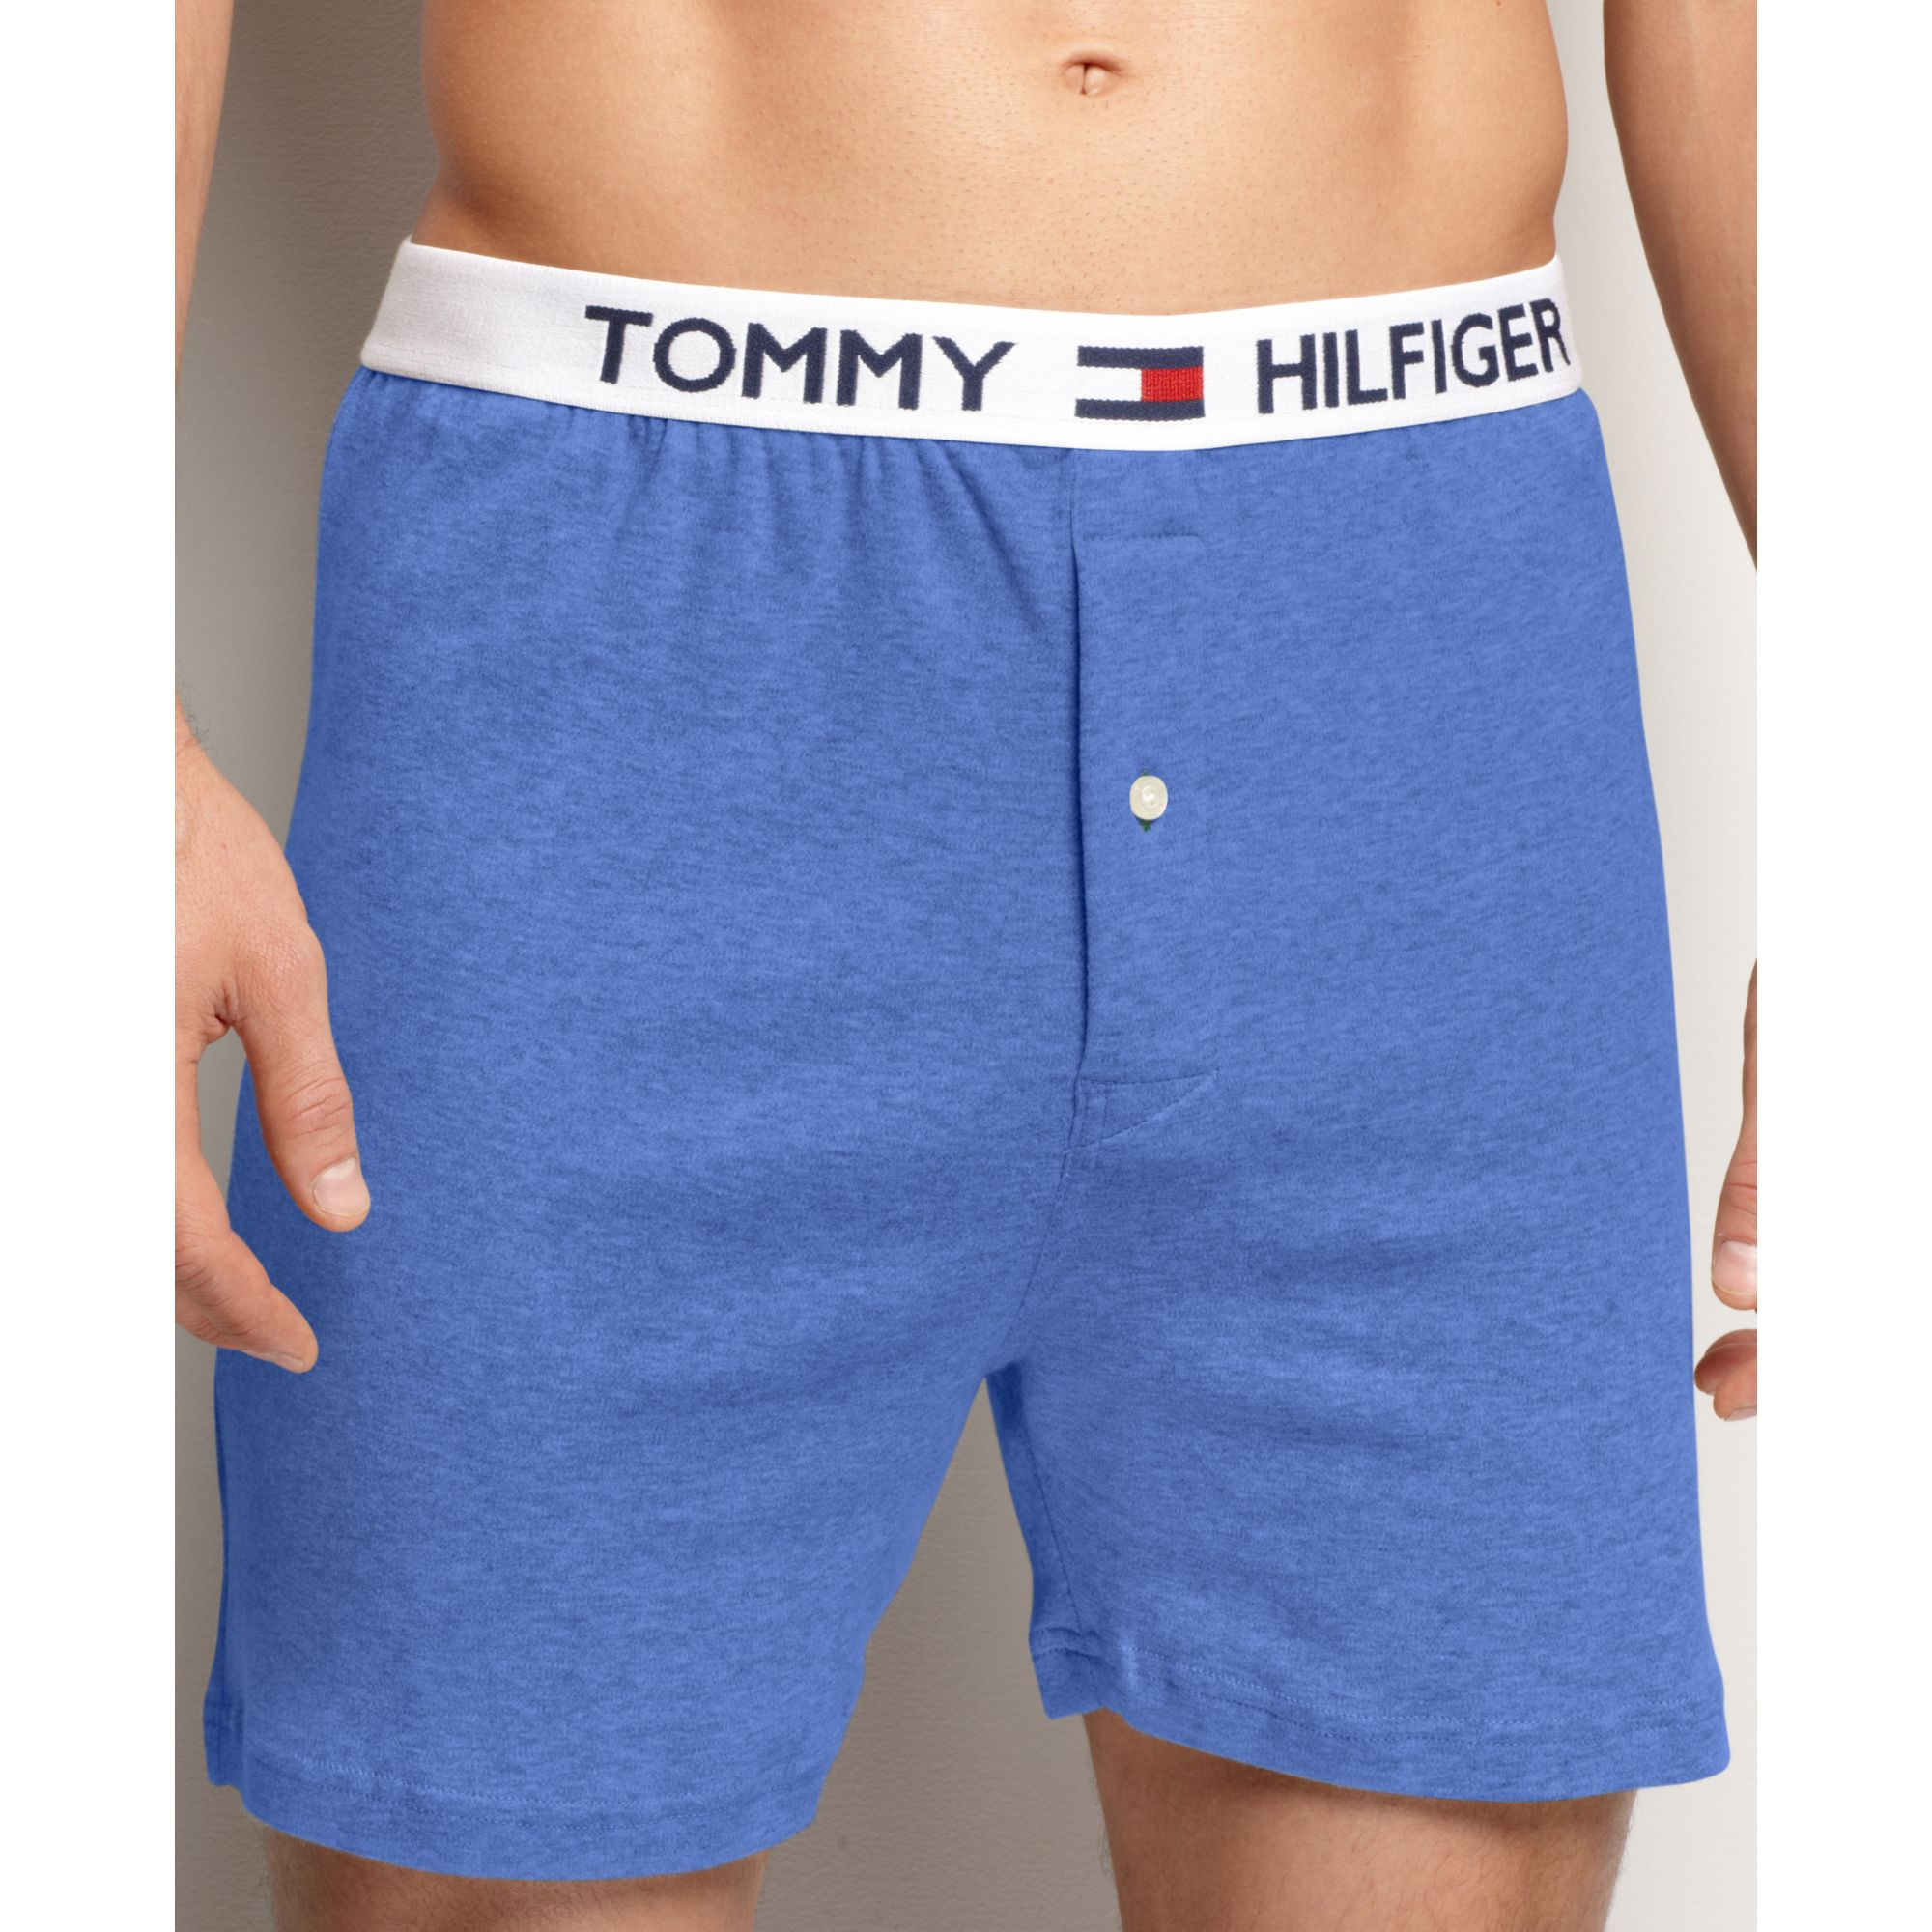 71acbb1c5041 Tommy Hilfiger Athletic Knit Boxer in Blue for Men - Lyst